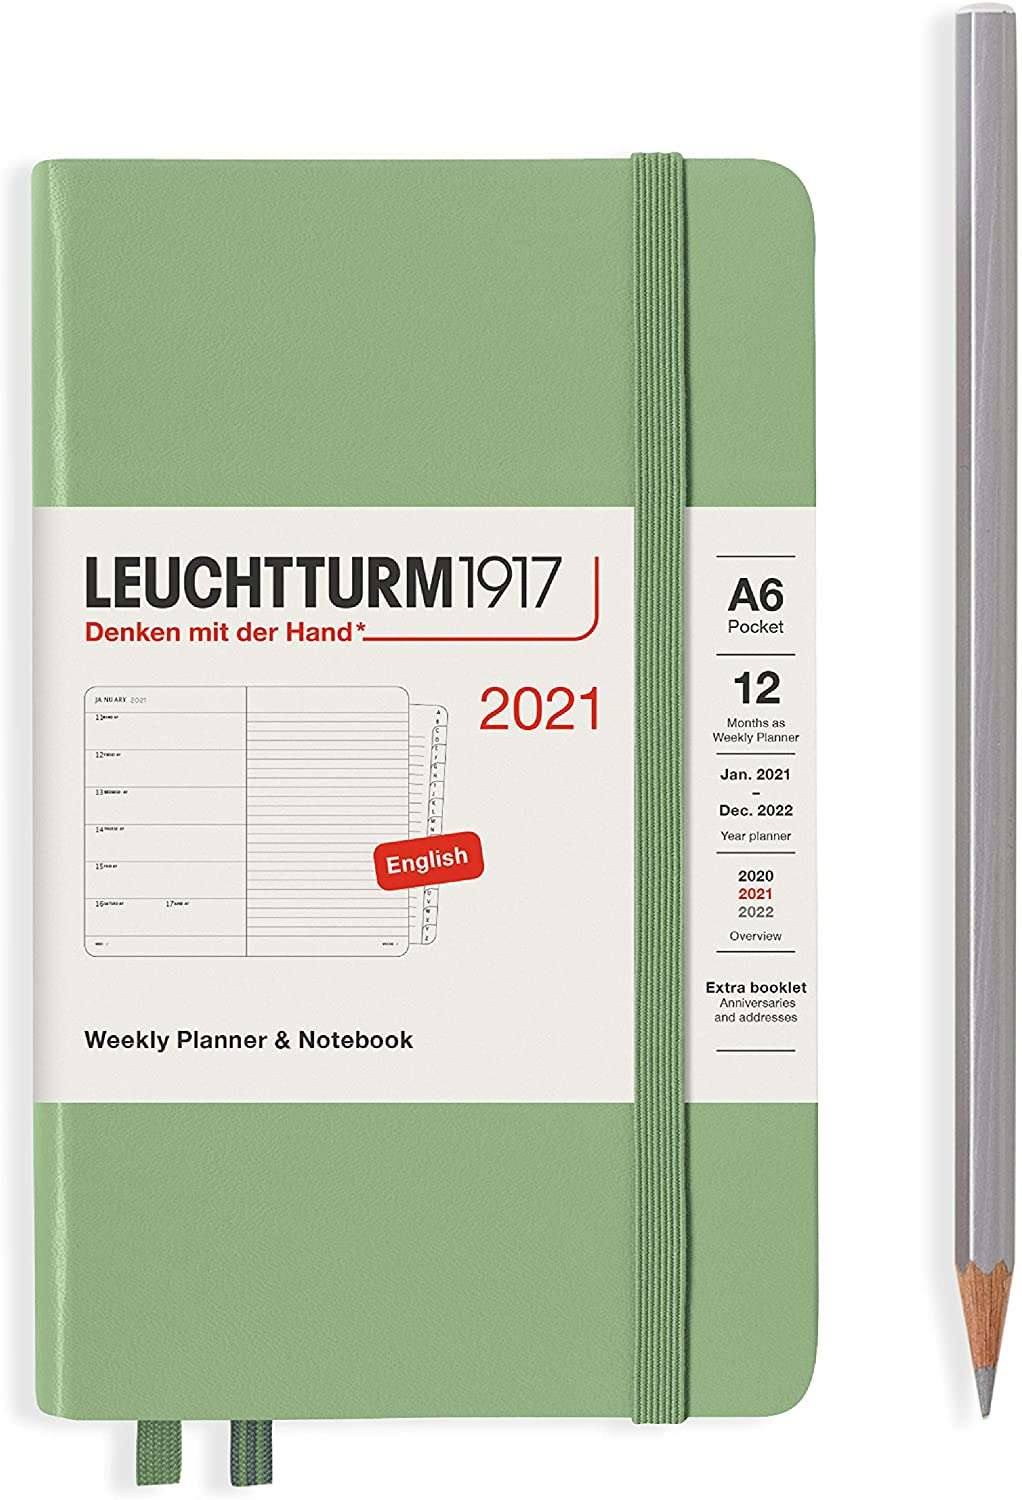 Leuchtturm1917 Weekly Planner & Notebook Pocket (A6) 2021 with extra booklet, English, Sage